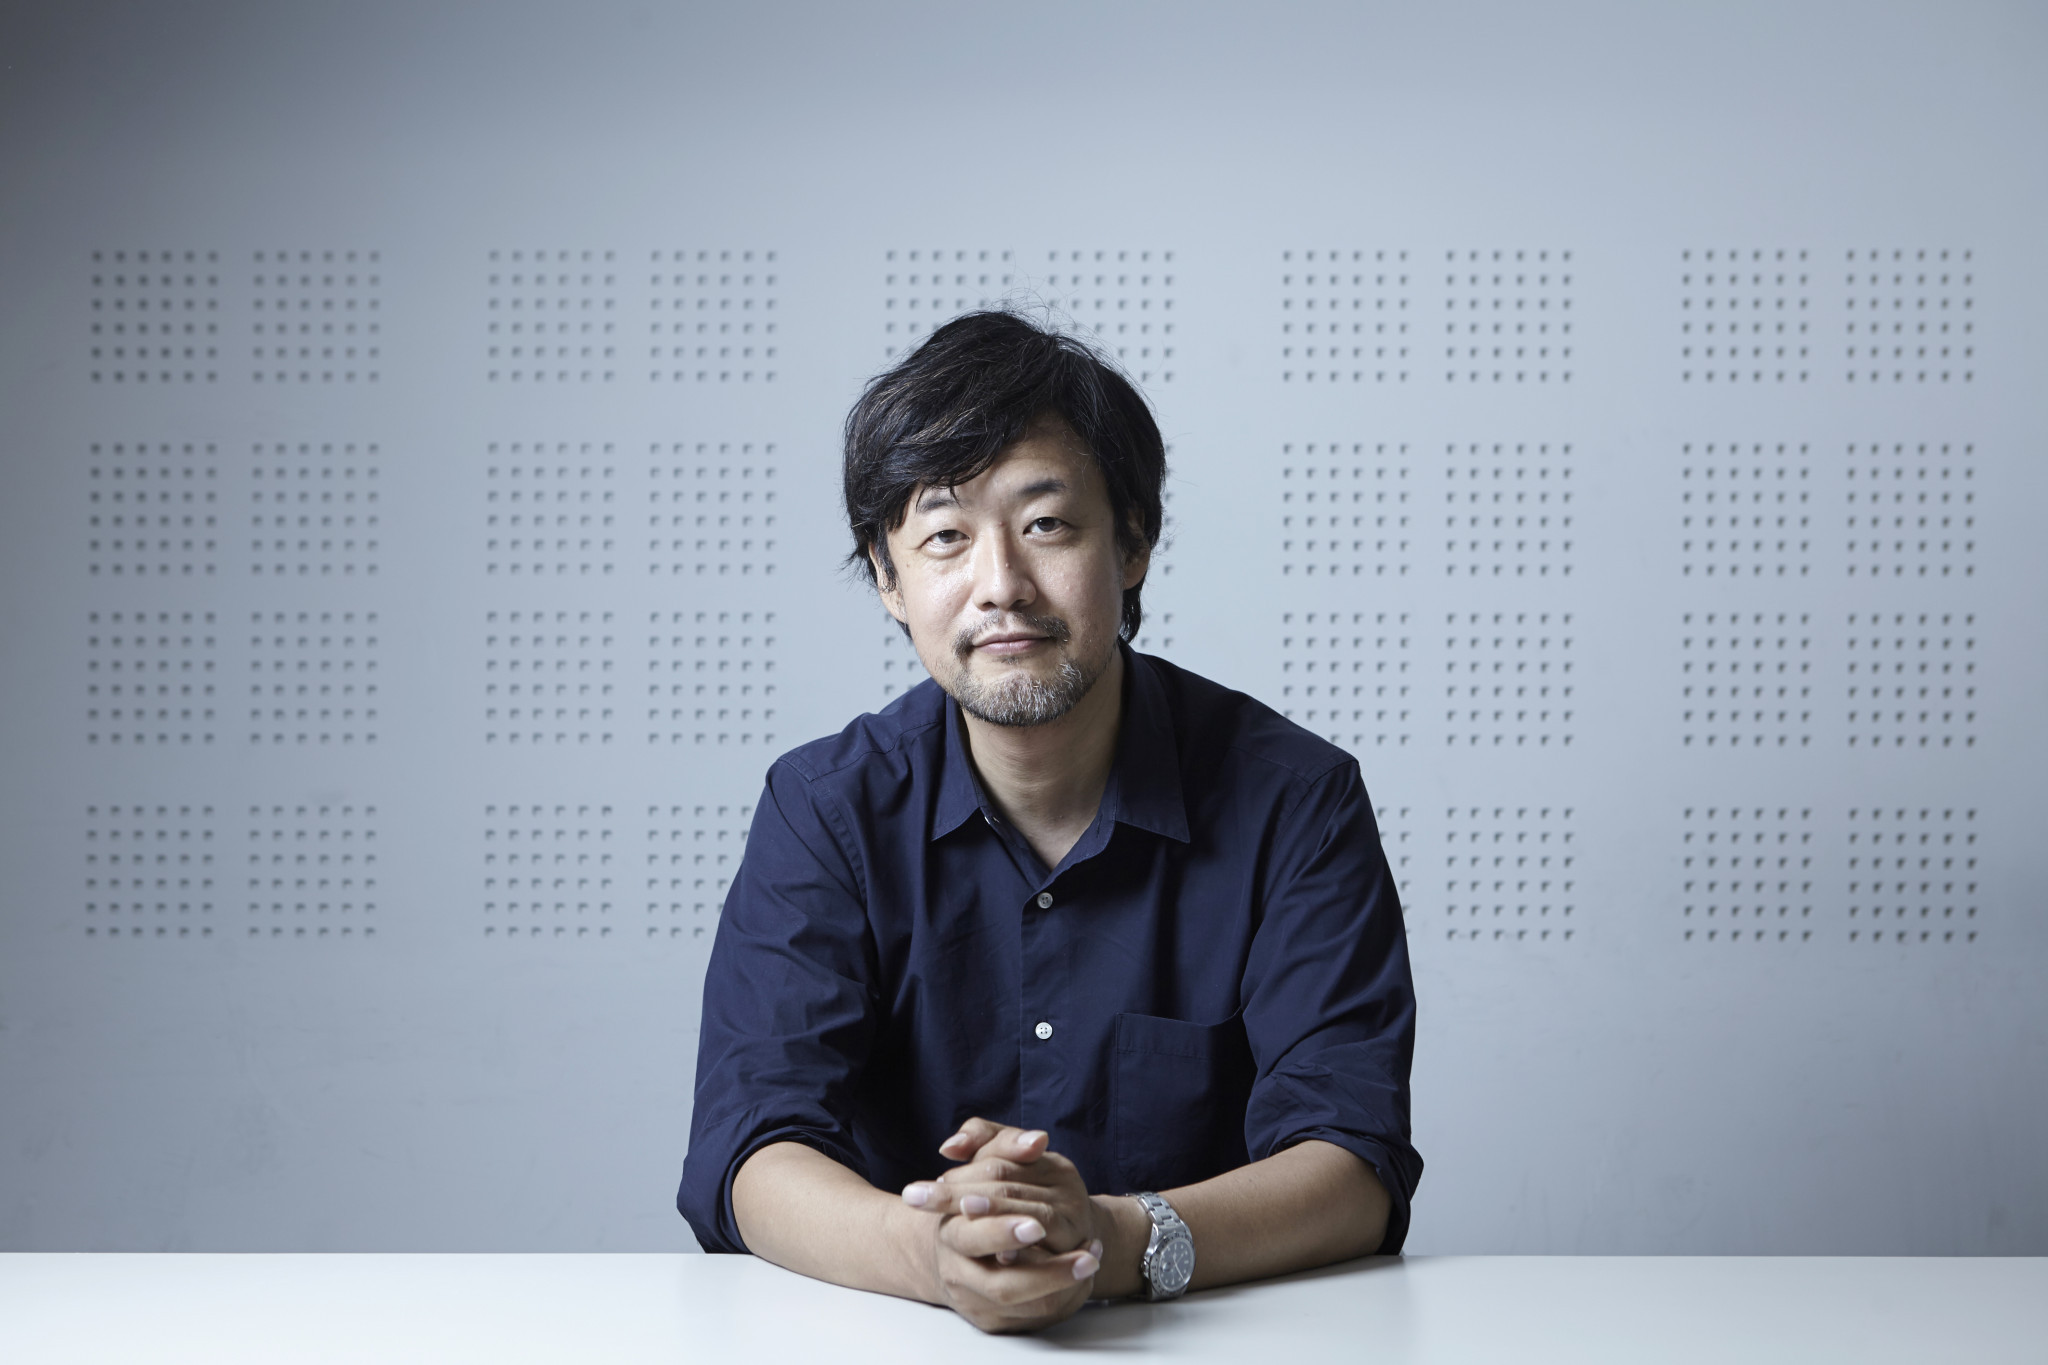 Acclaimed Japanese film director Takashi Yamazaki will oversea the Olympic Ceremonies ©Tokyo 2020